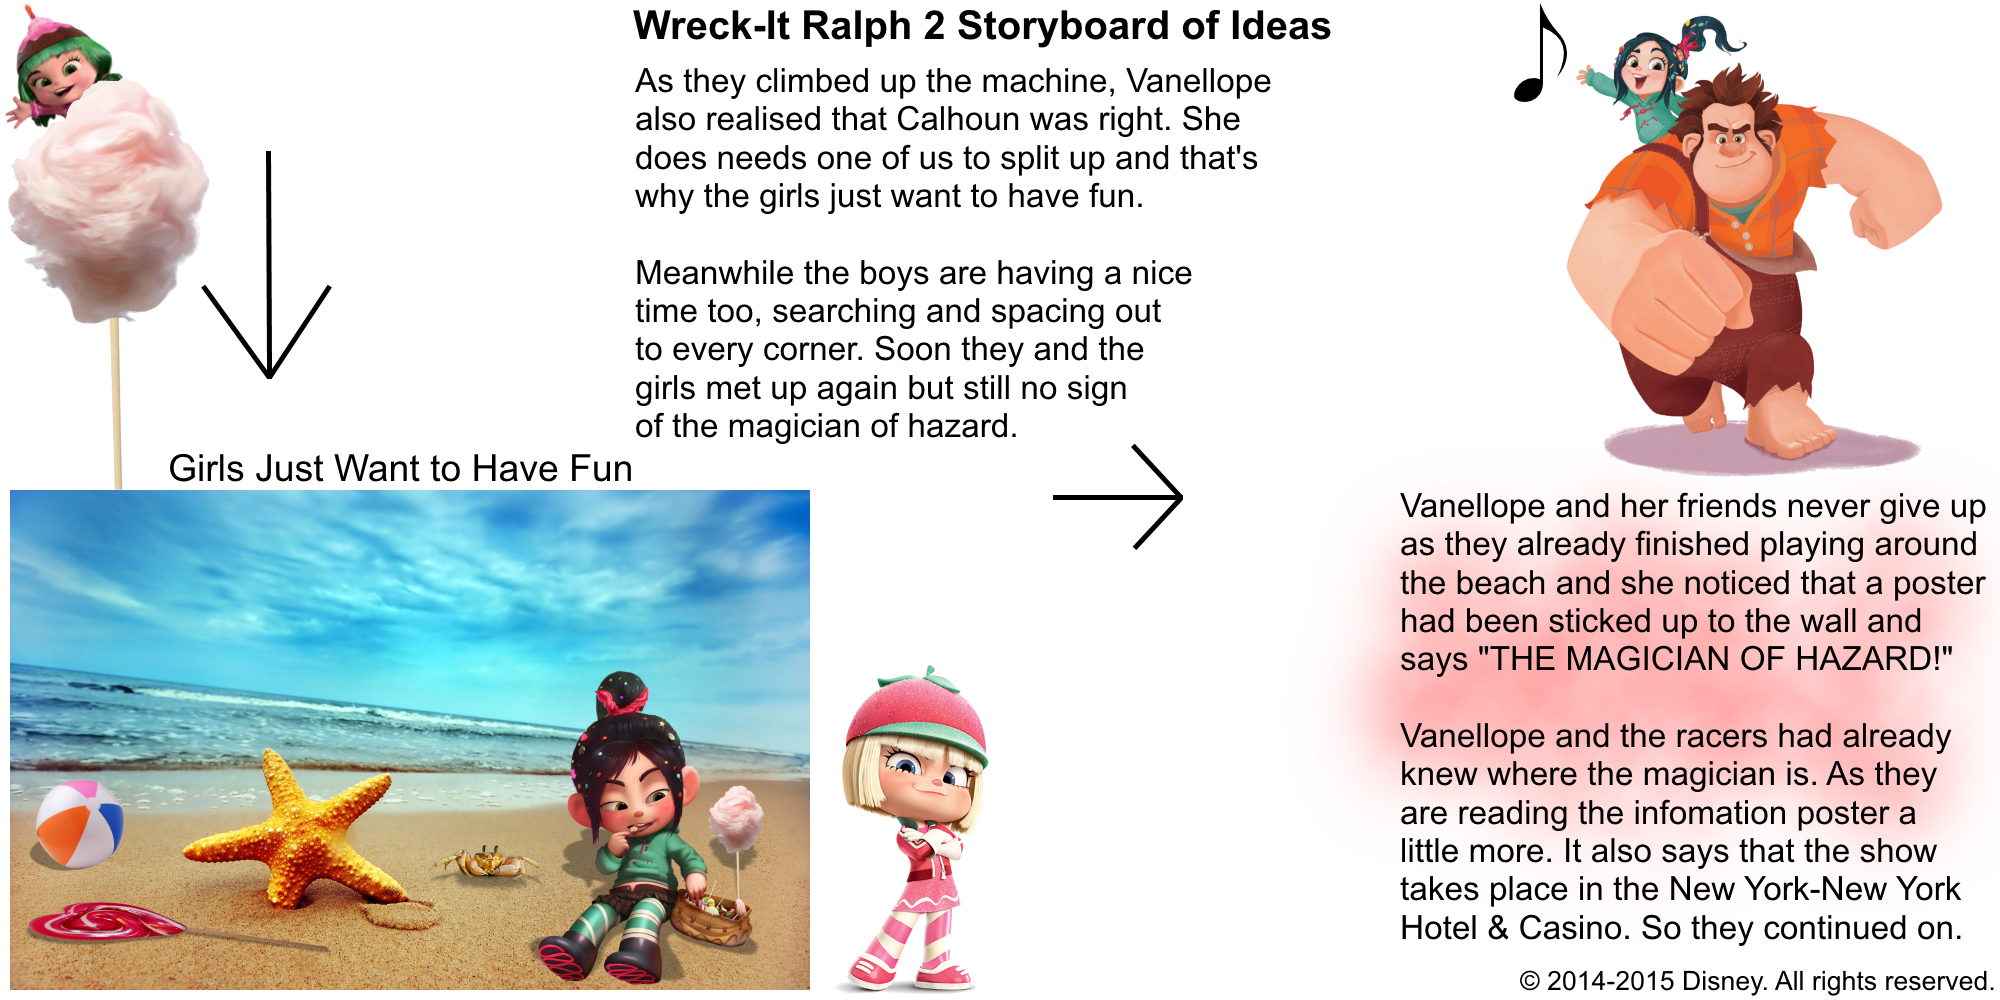 Best Lines From Wreck It Ralph 2: Wreck-It Ralph 2 Storyboard Of Ideas 12.png